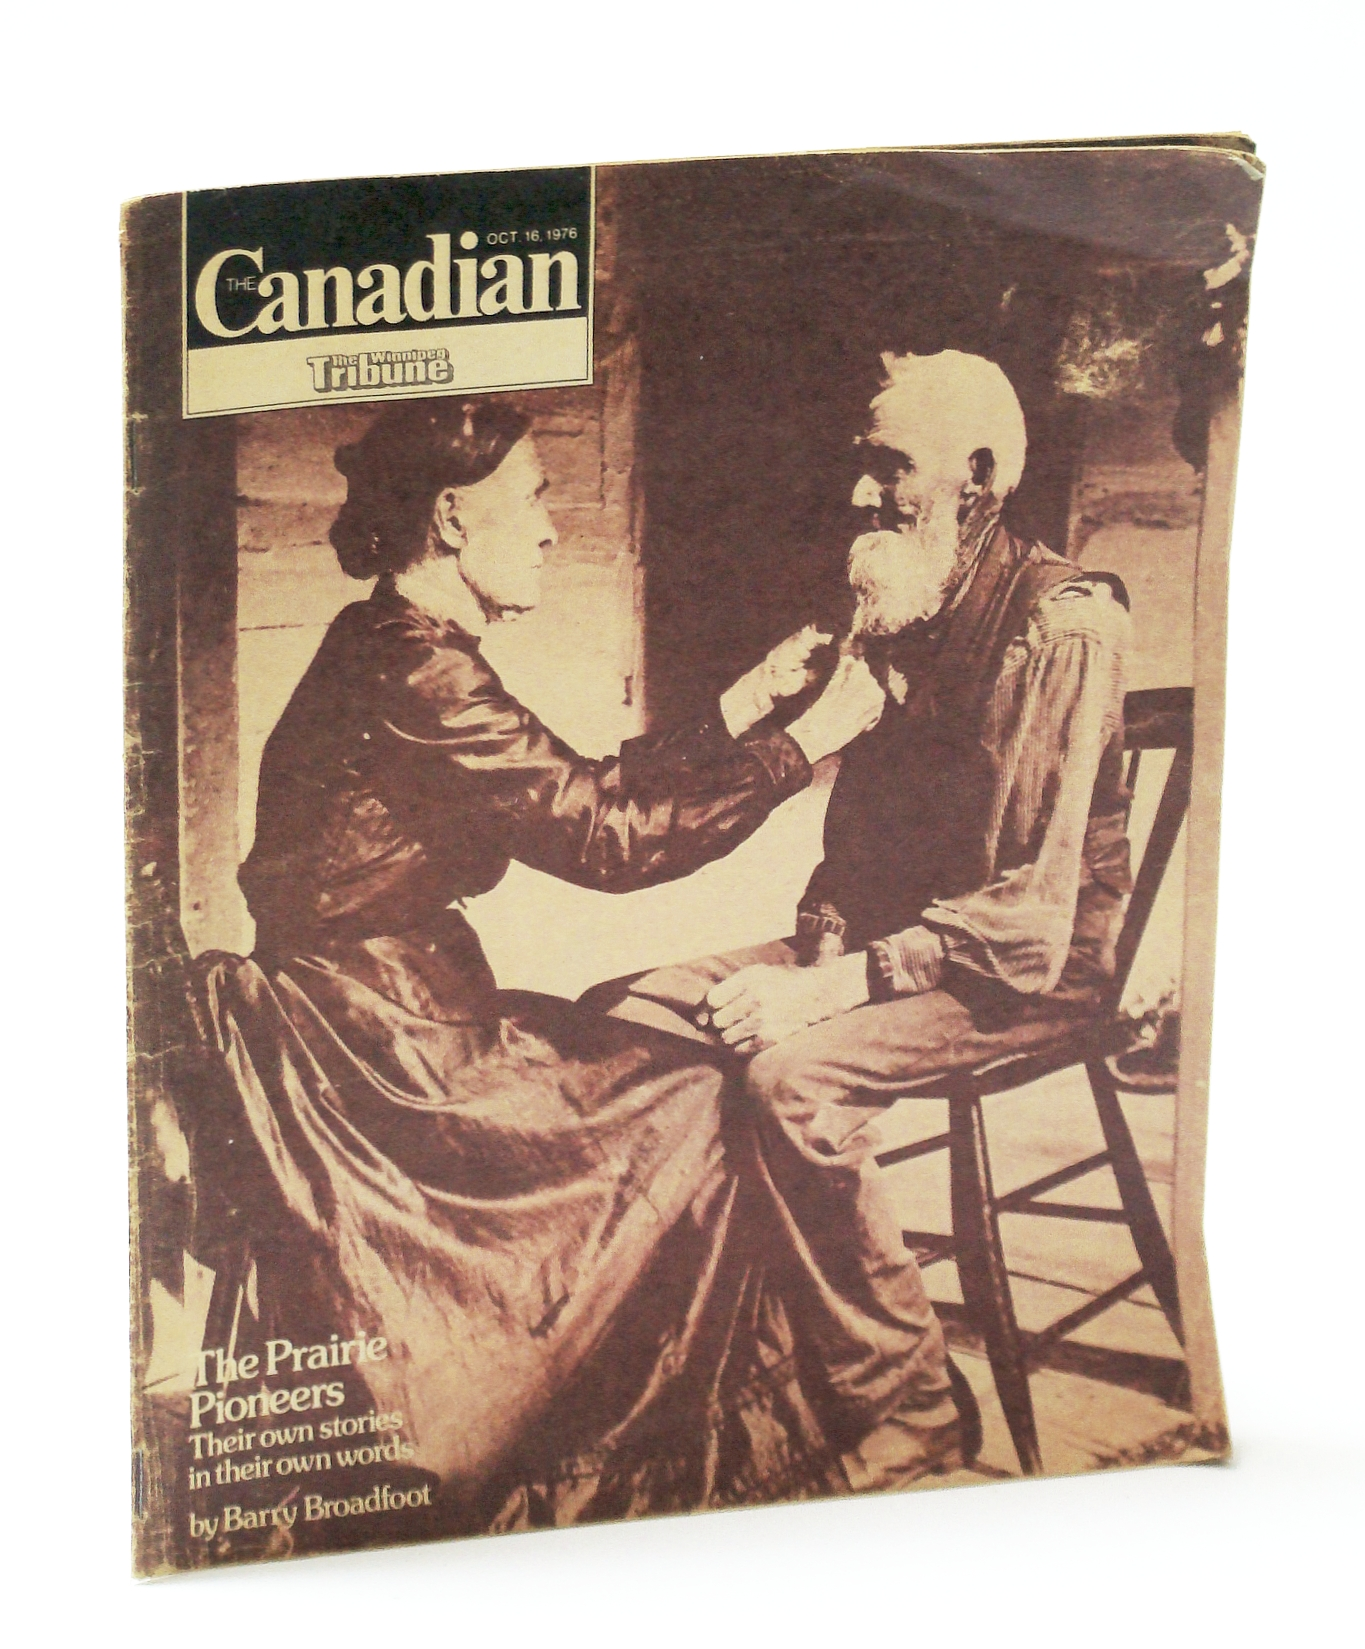 Image for The Canadian Magazine, October (Oct.) 16, 1976 - The Prairie Pioneers In Their Own Words / Novelist R. Lance Hill